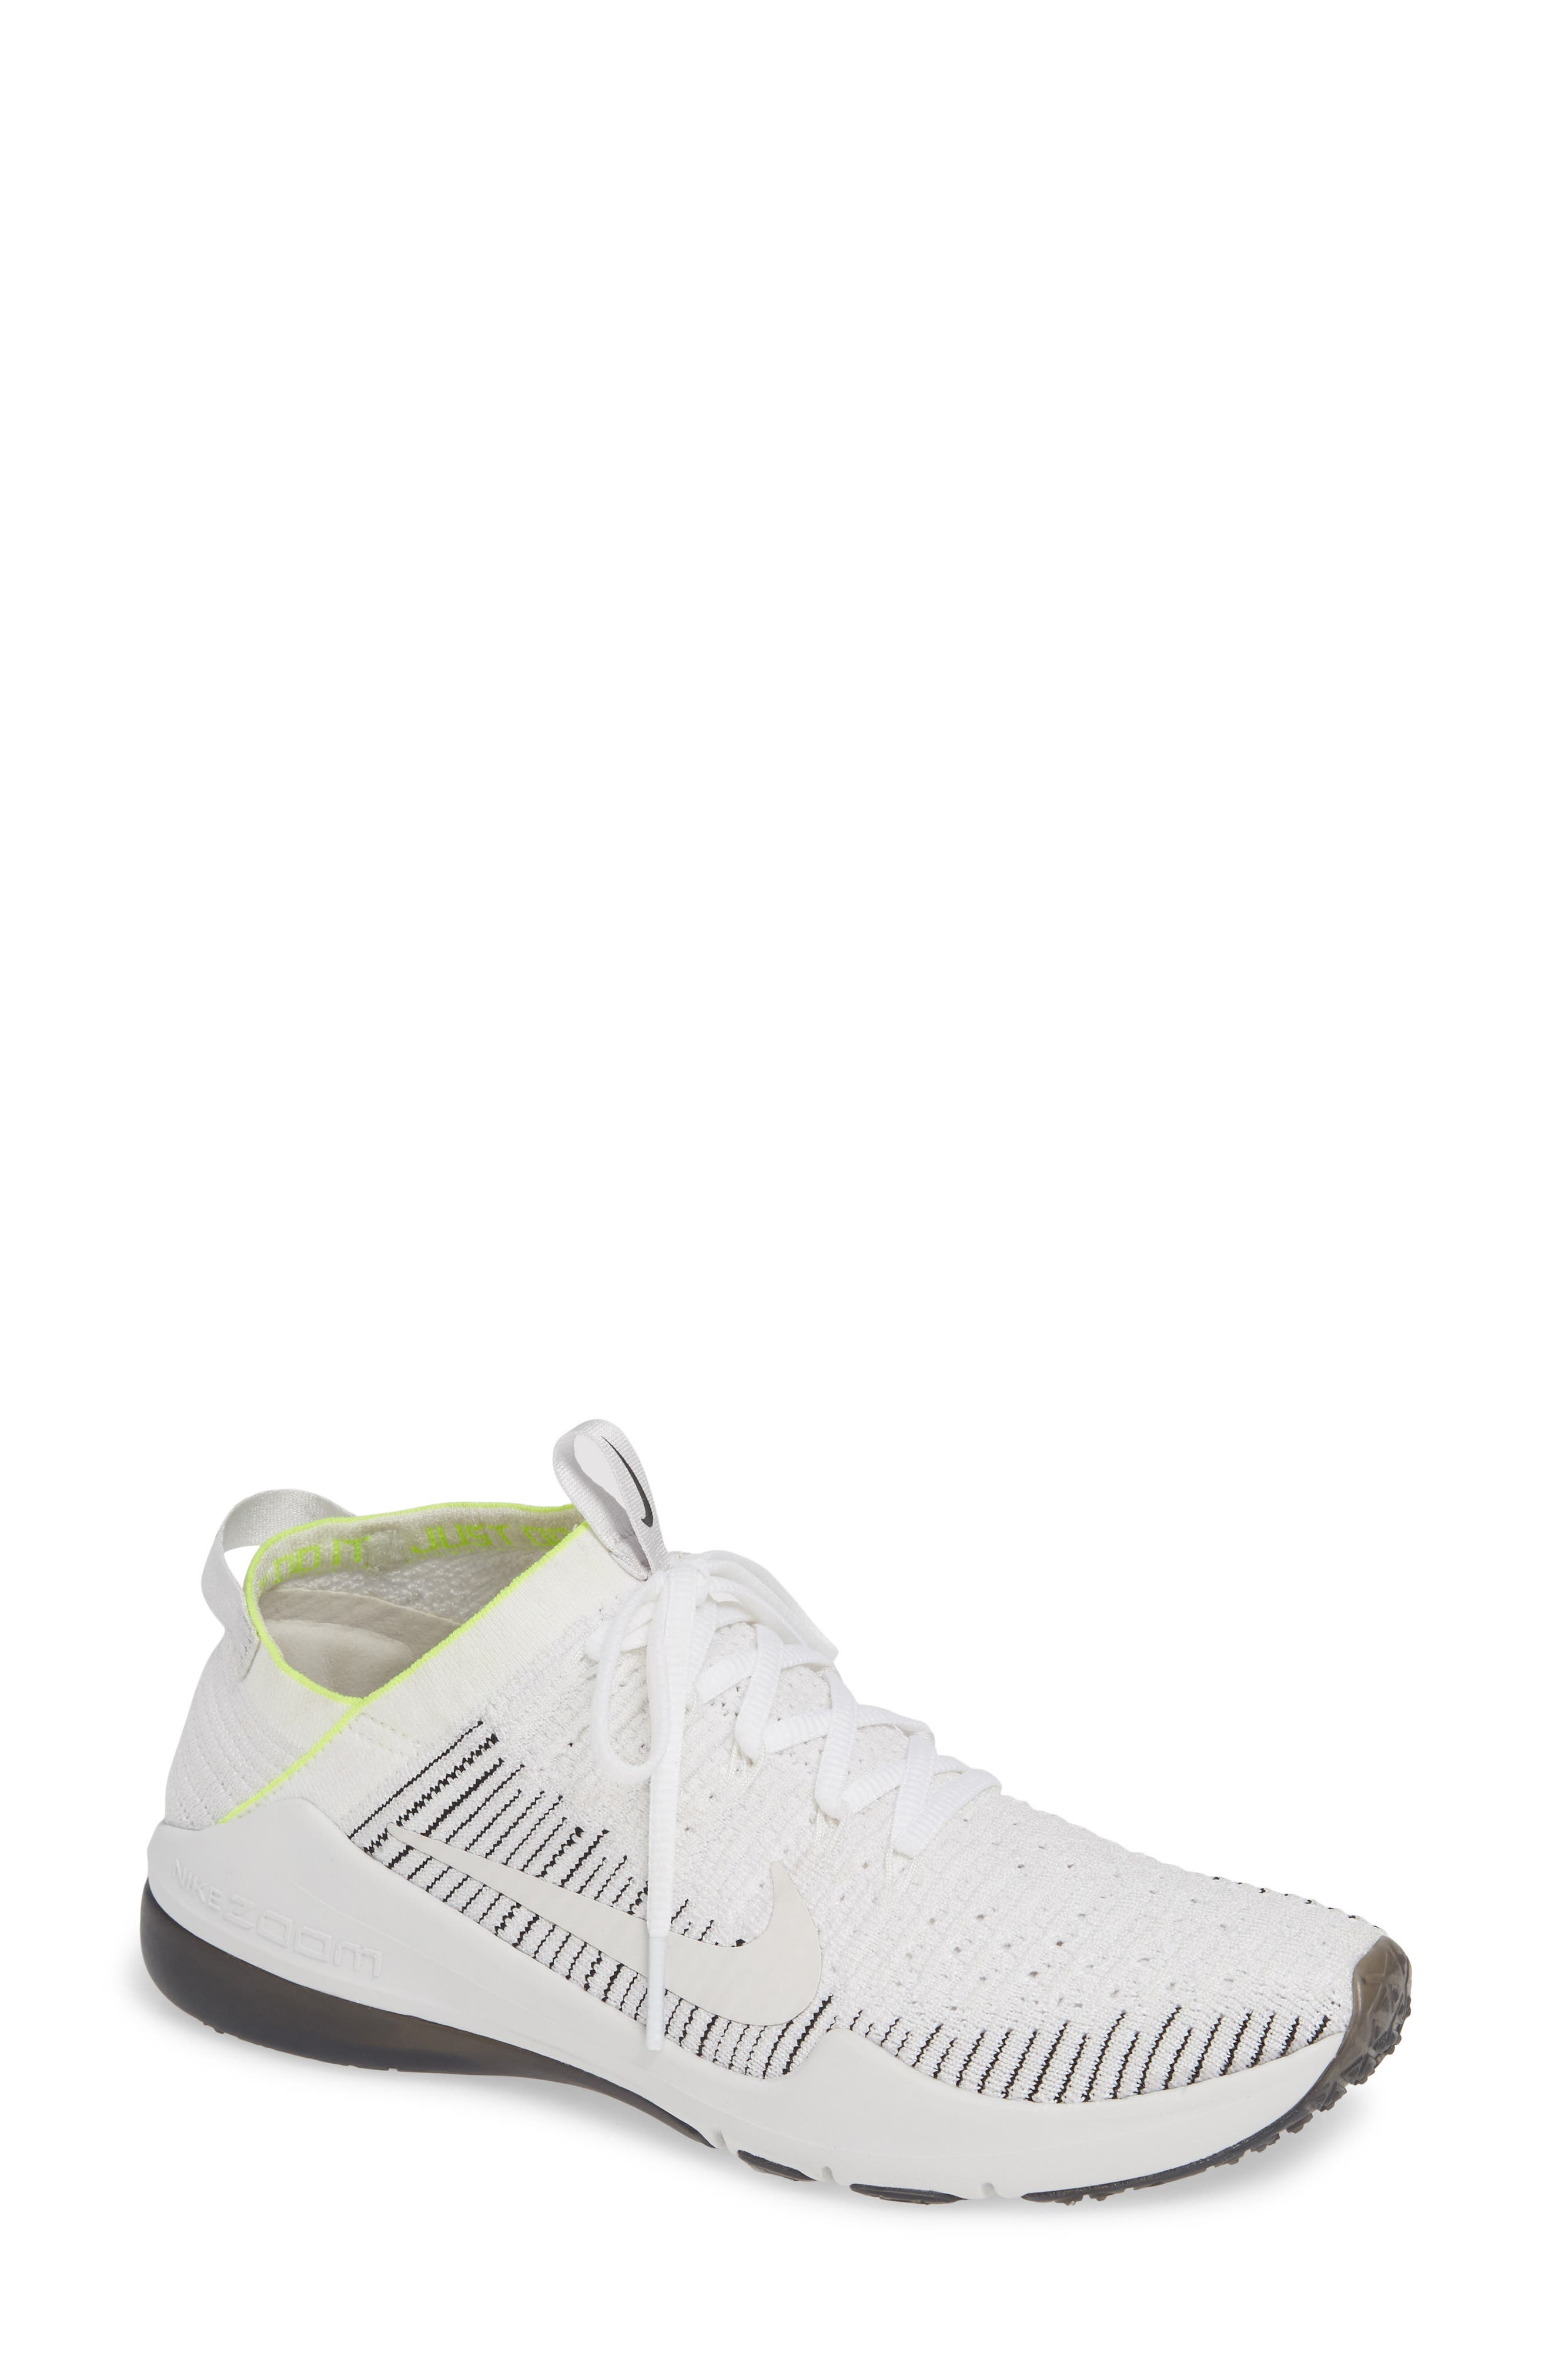 Air Zoom Fearless Flyknit 2 Training Sneaker,                             Main thumbnail 1, color,                             101